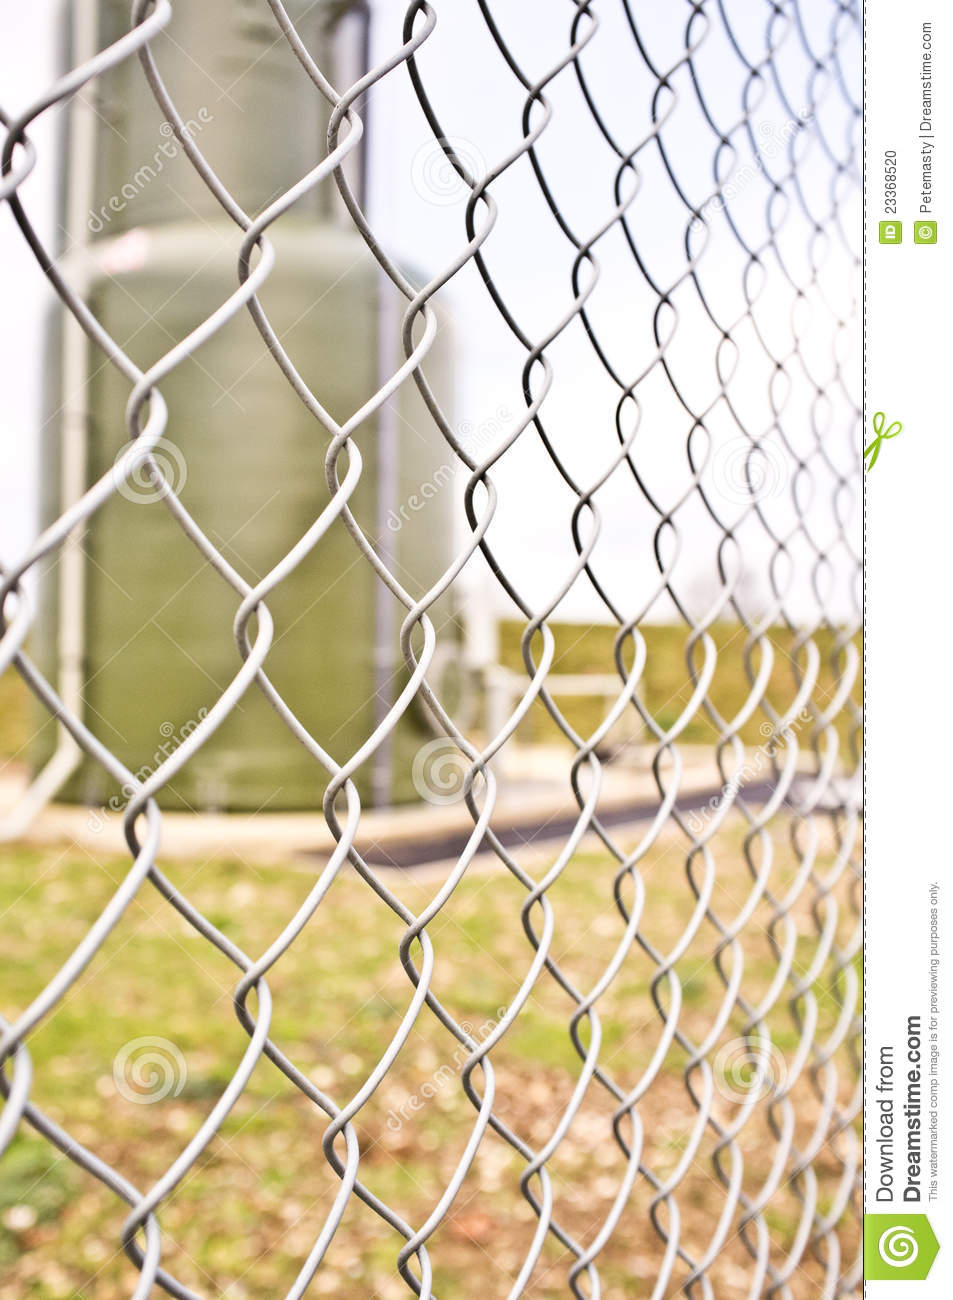 Chainlink fencing on an industrial site stock photo